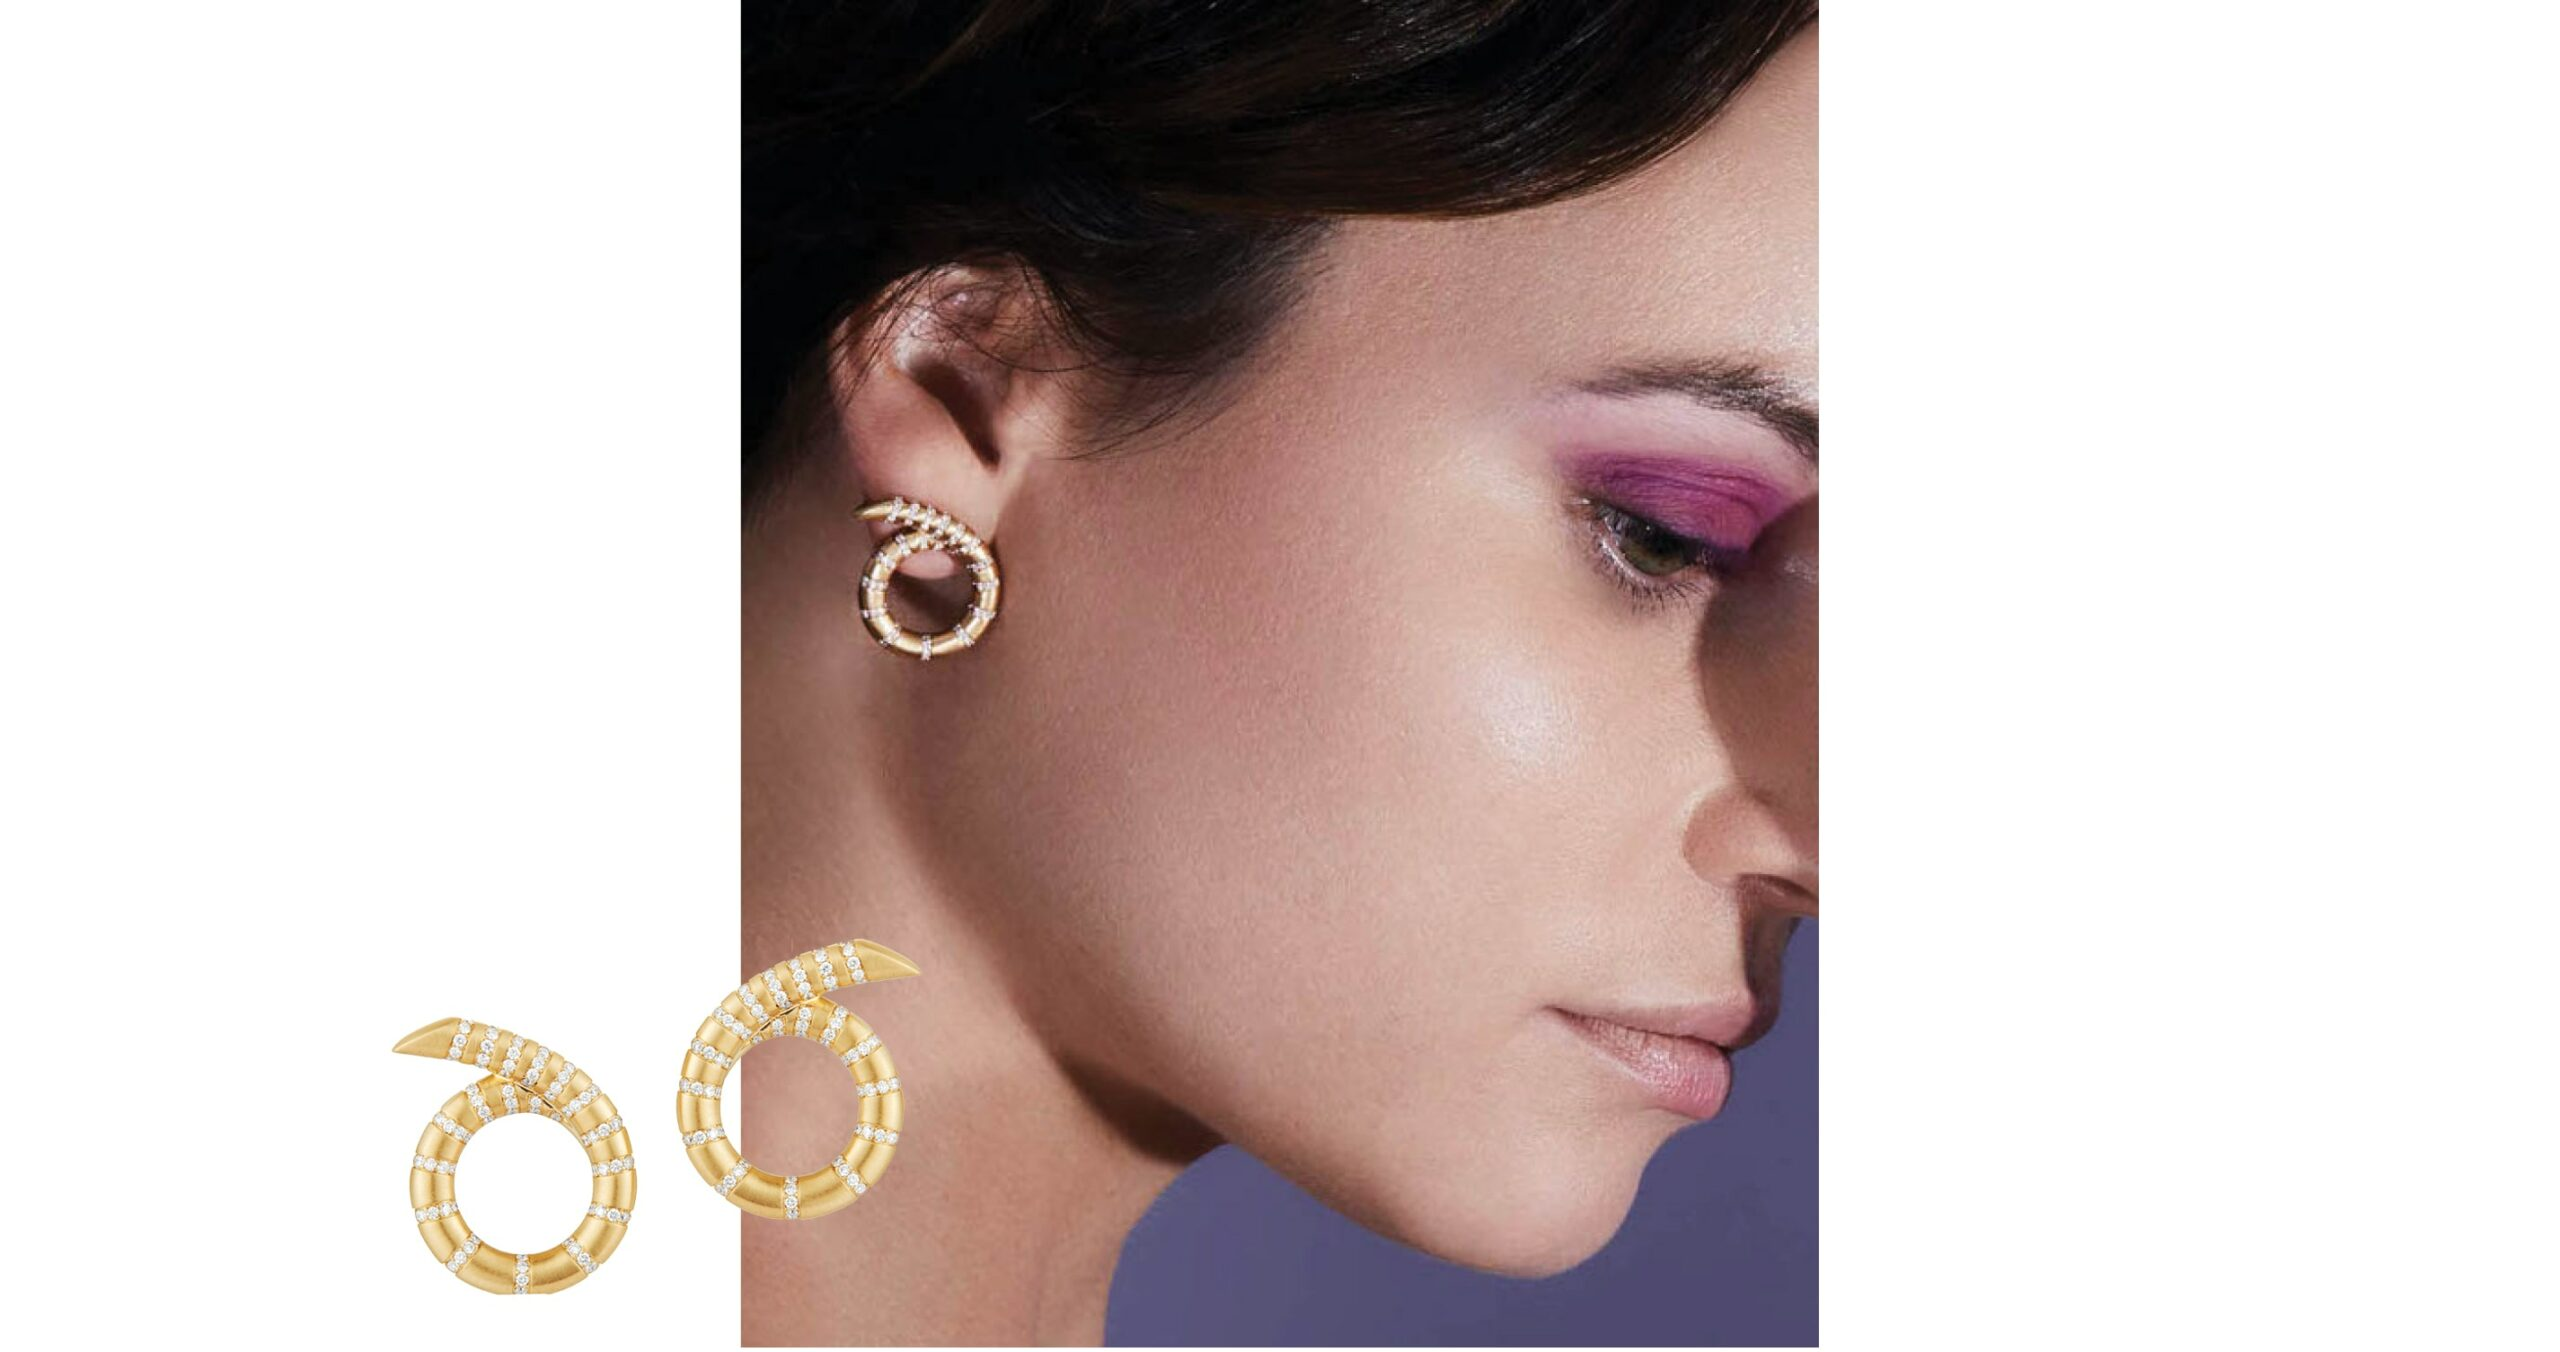 Aria Coil Earrings from Jemma Wynne that features chunky twisted gold hoop earrings design with spiraled diamond outlines